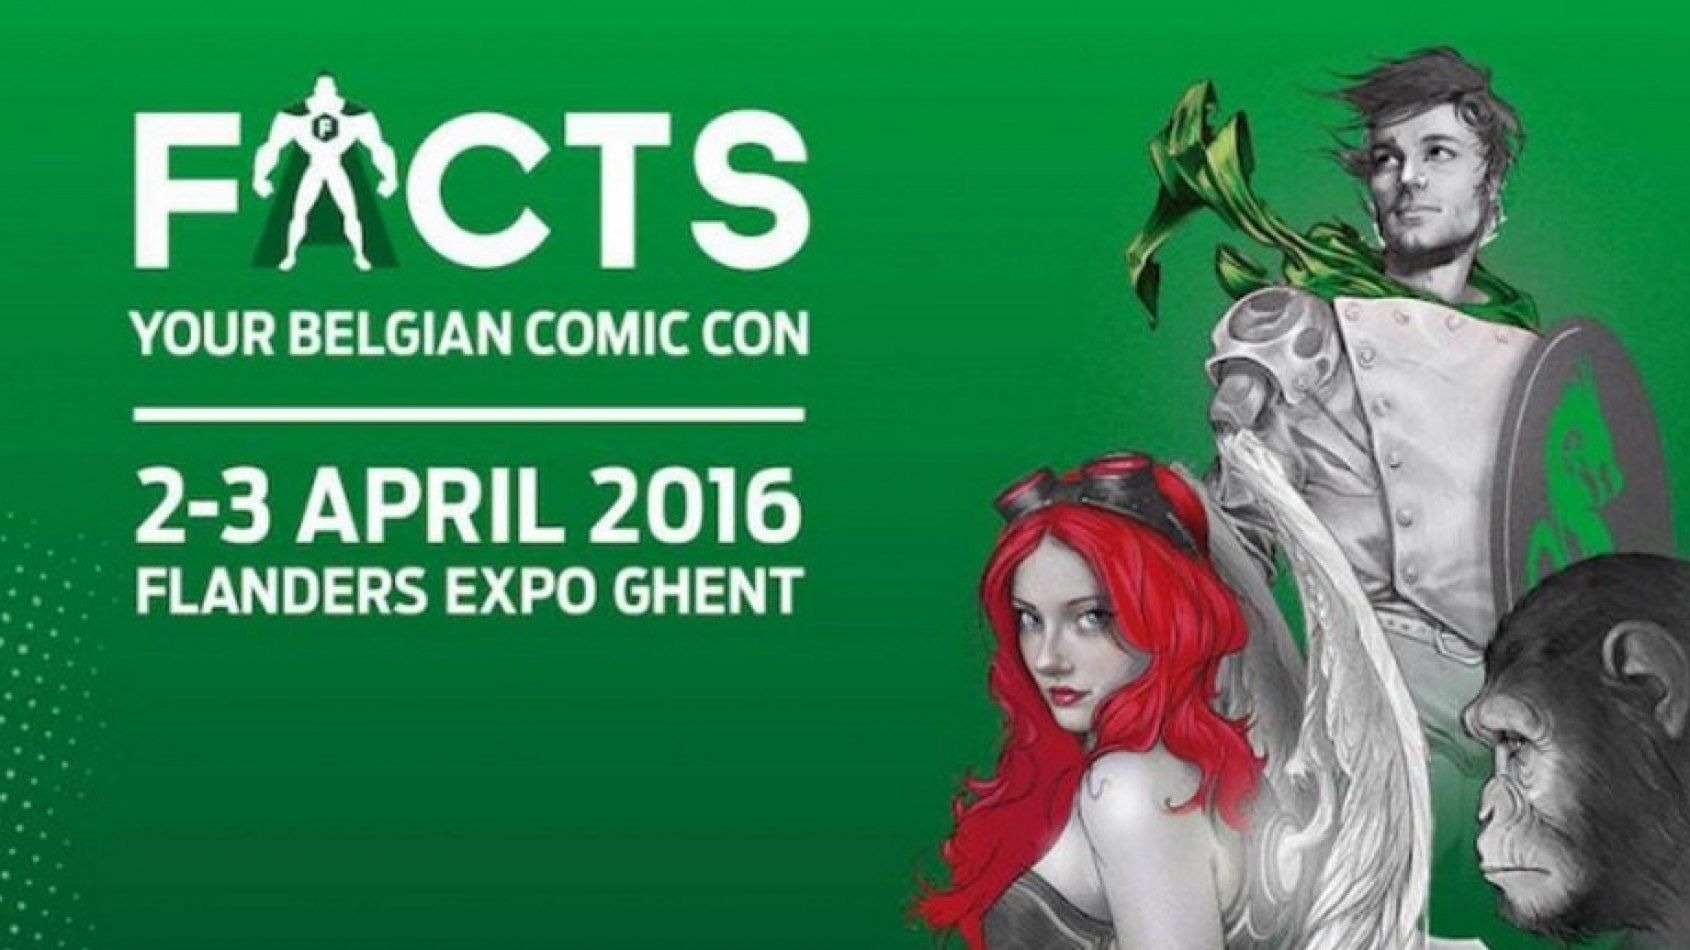 FACTS Spring Edition dans 10 jours !